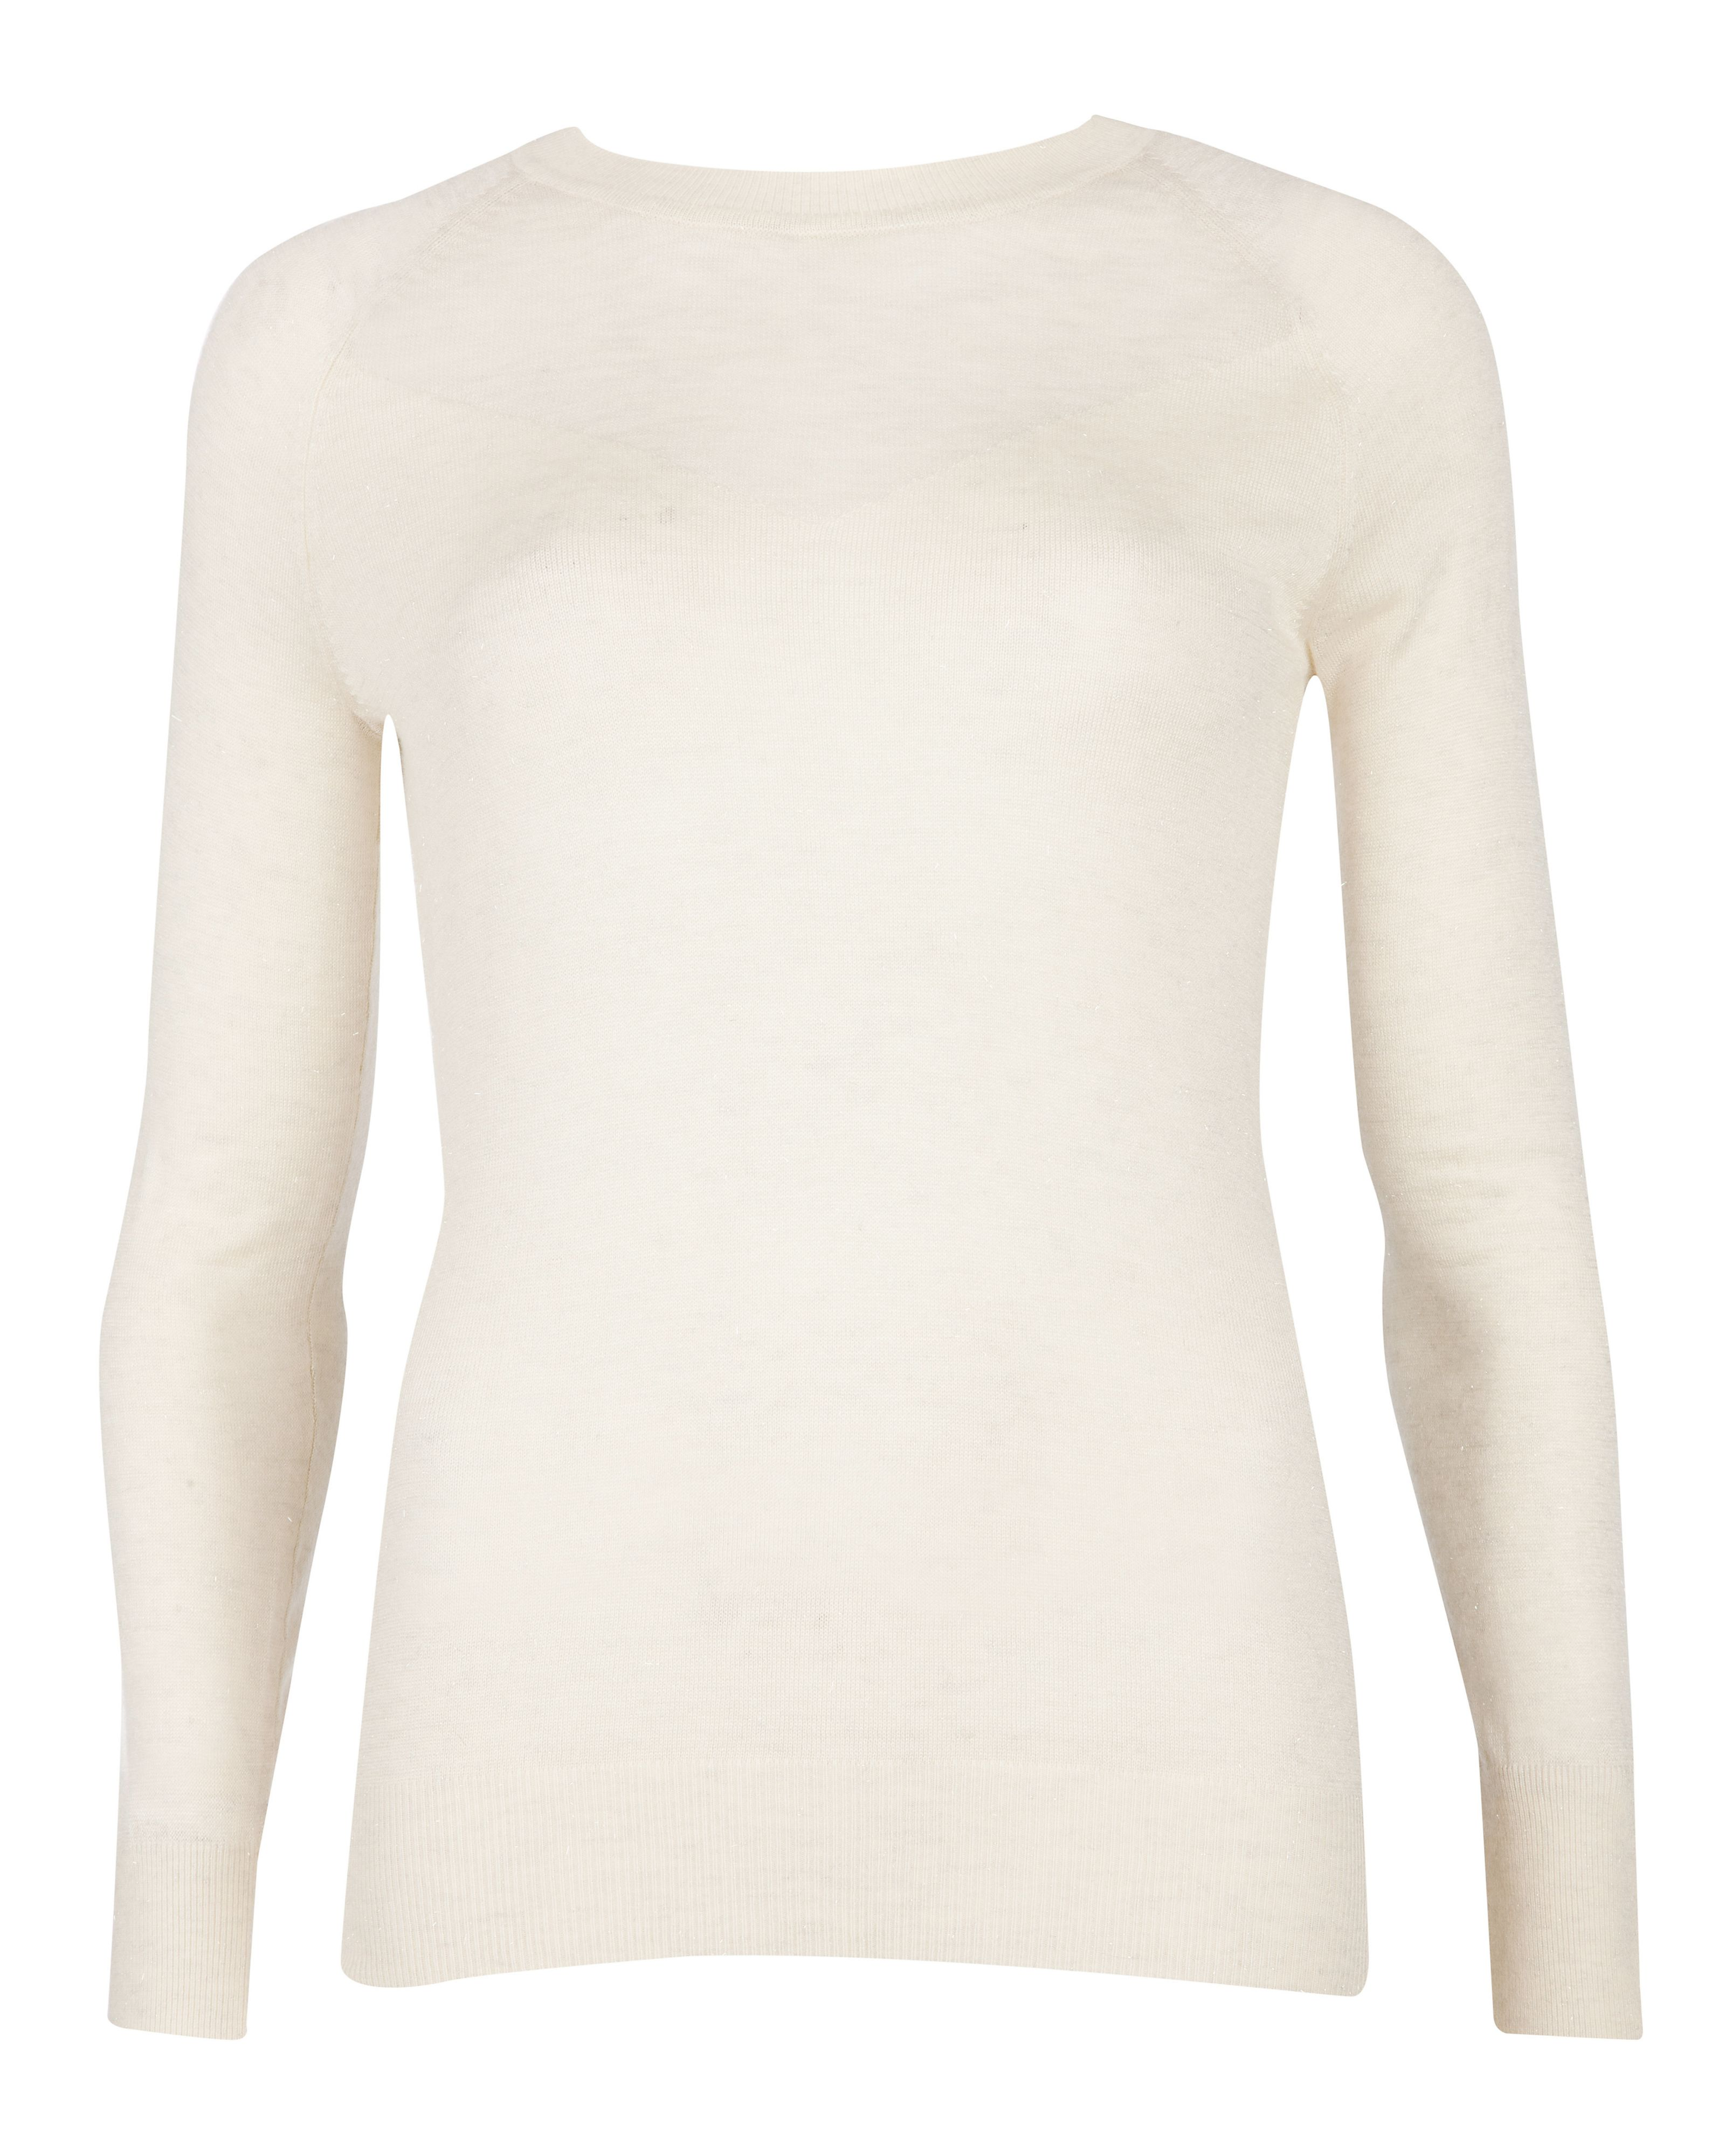 Tereesa sheer panel sweater